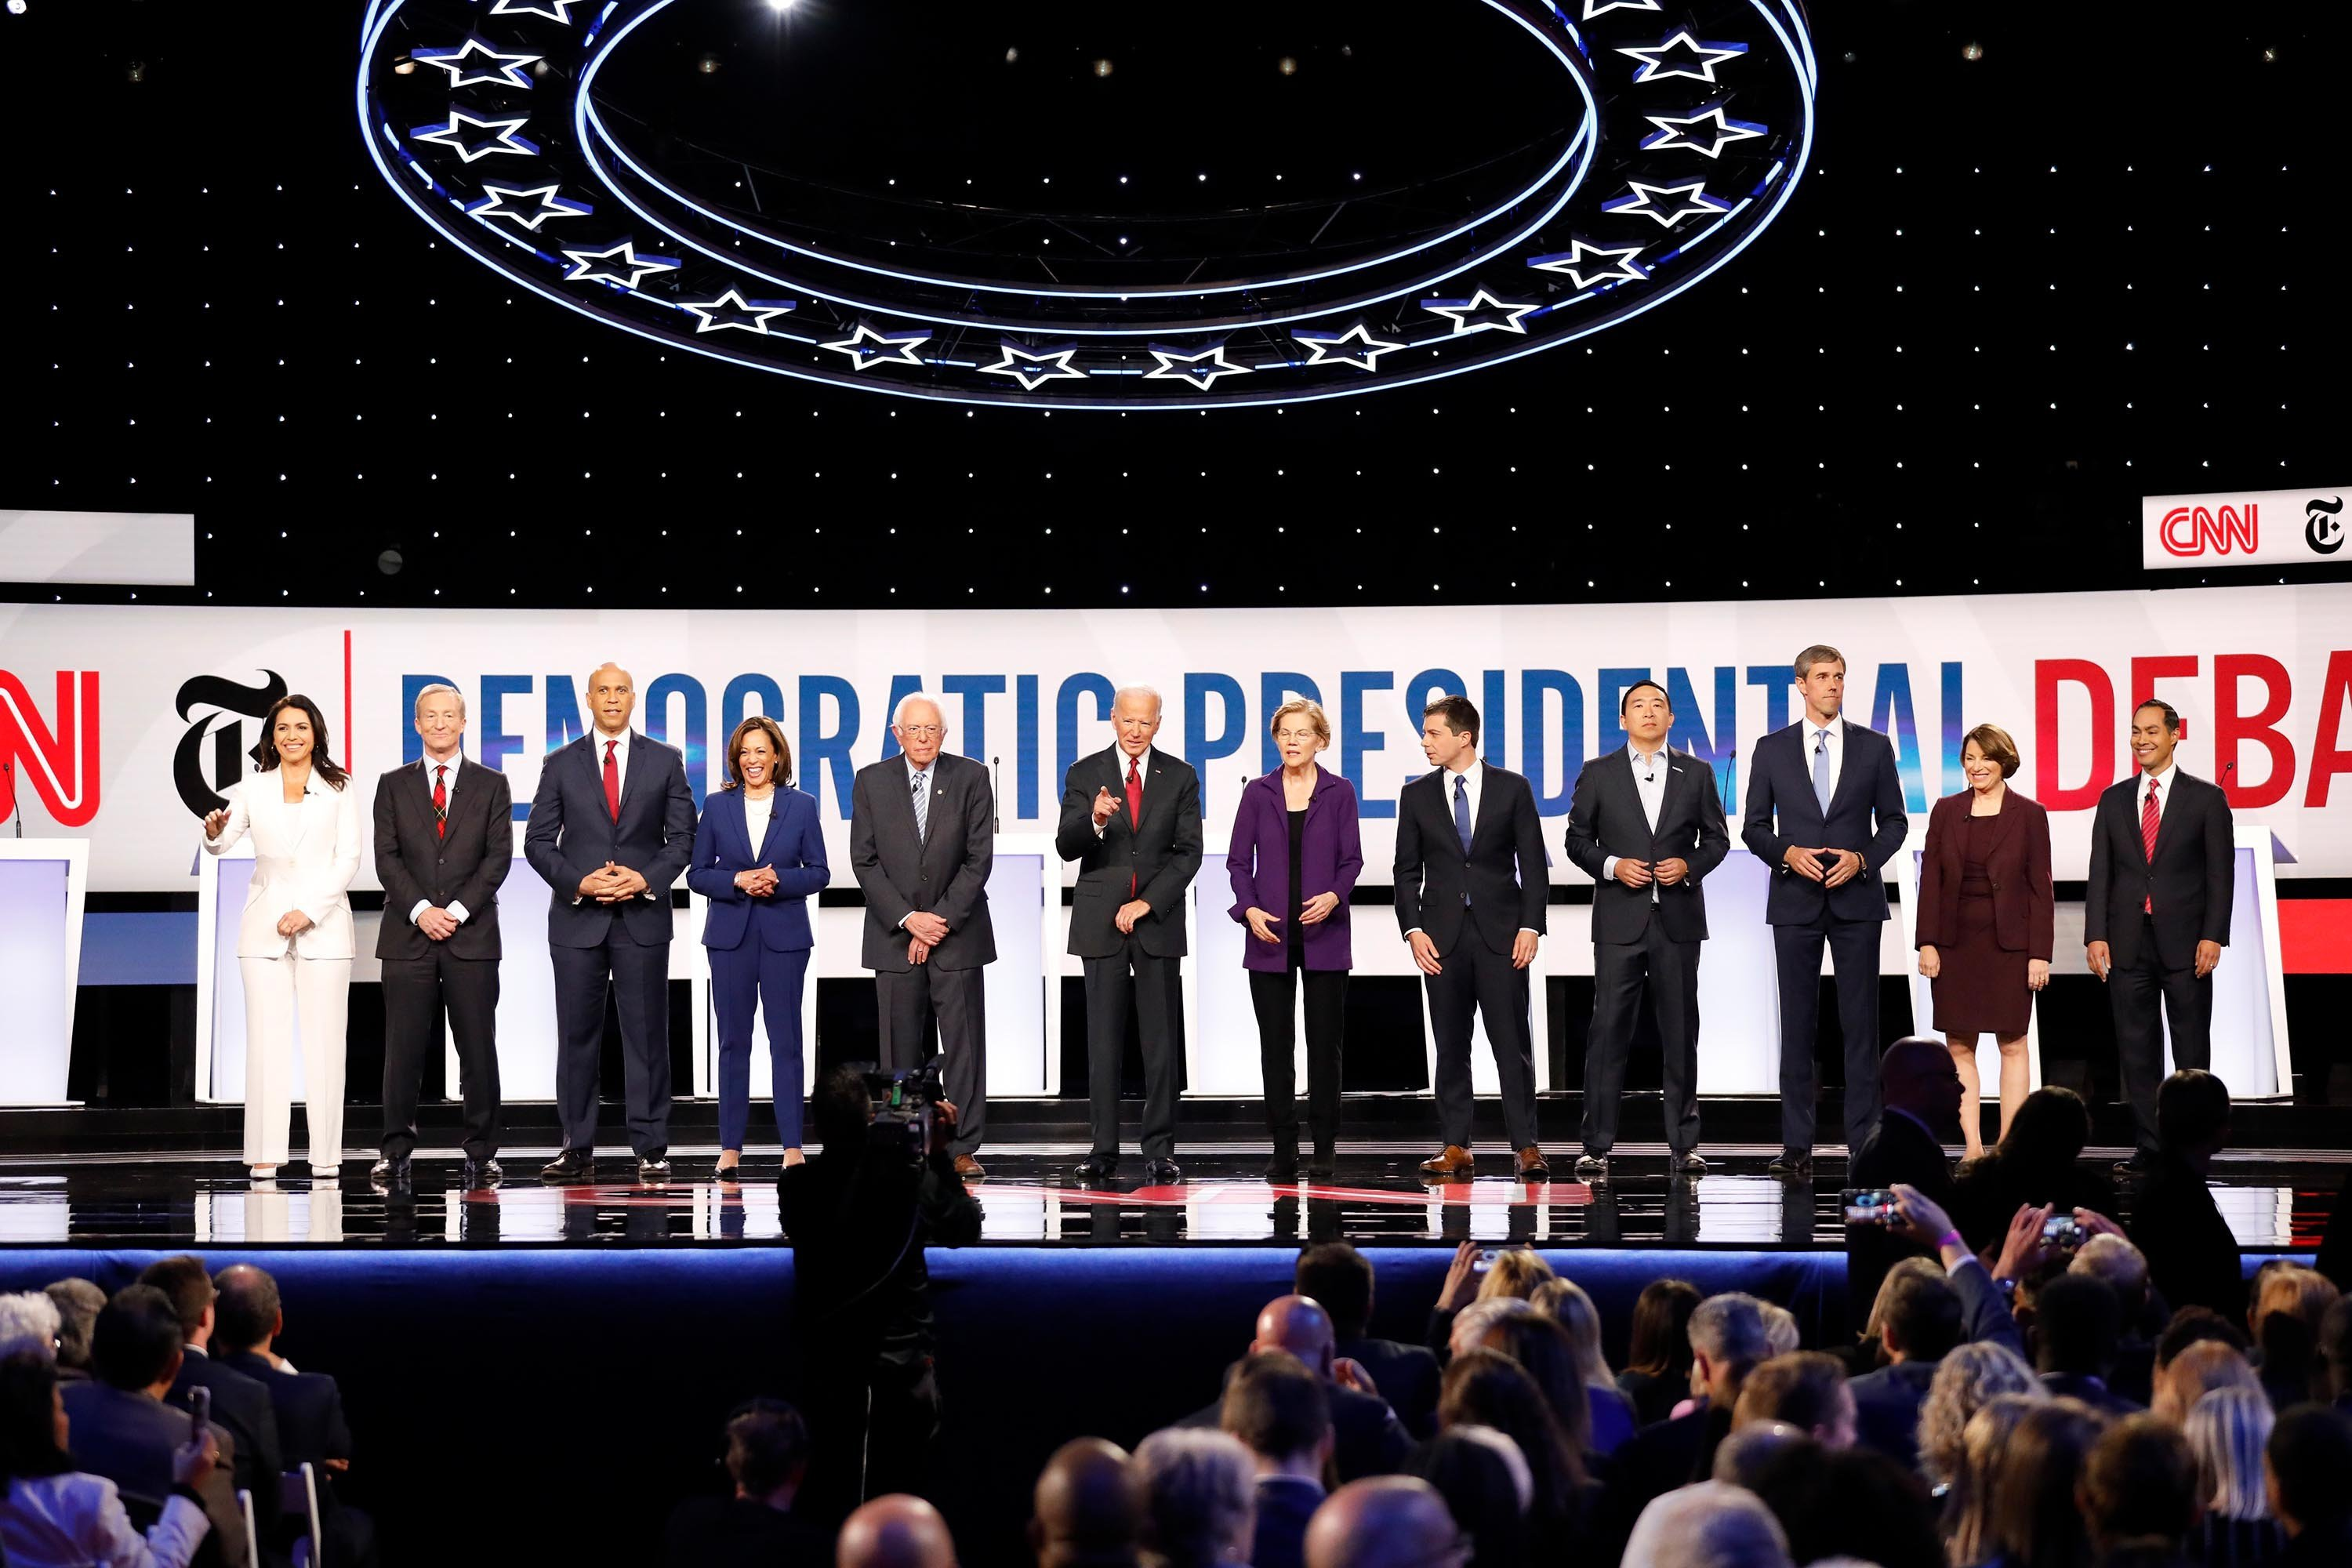 2020 Democrats stand united in support of impeachment process at debate